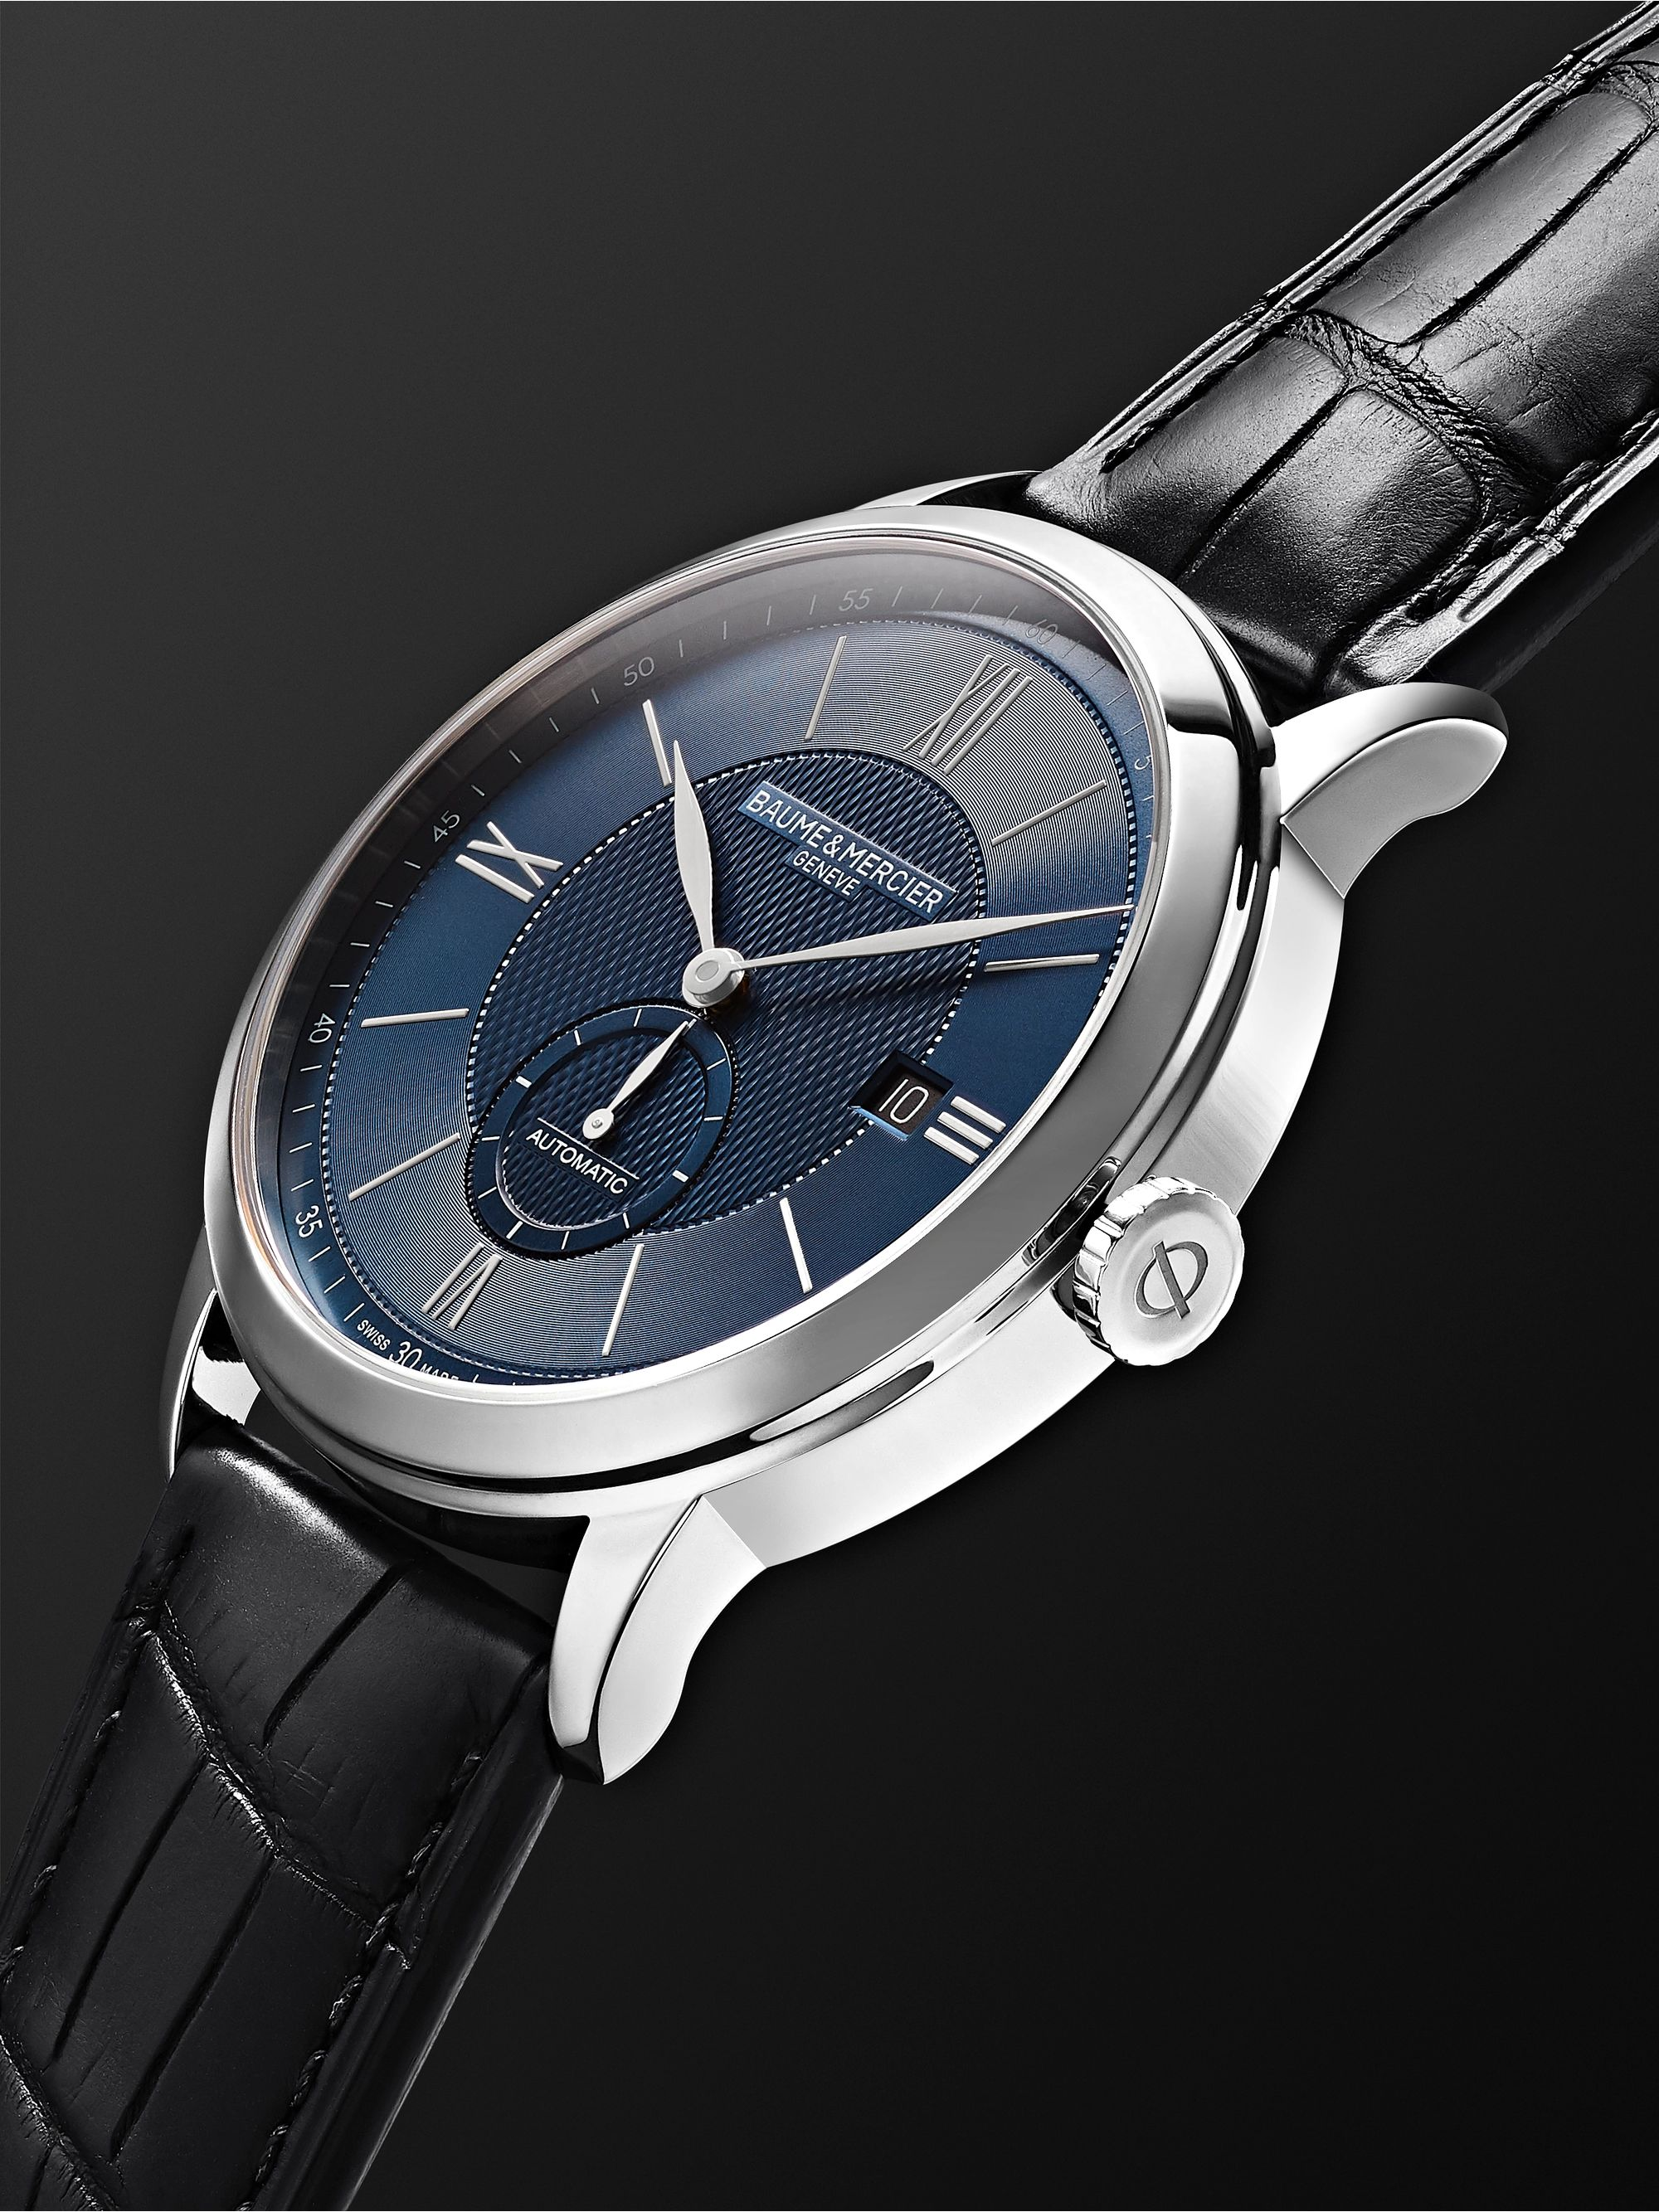 Baume & Mercier Classima Automatic 42mm Stainless Steel and Alligator Watch, Ref. No. M0A10480